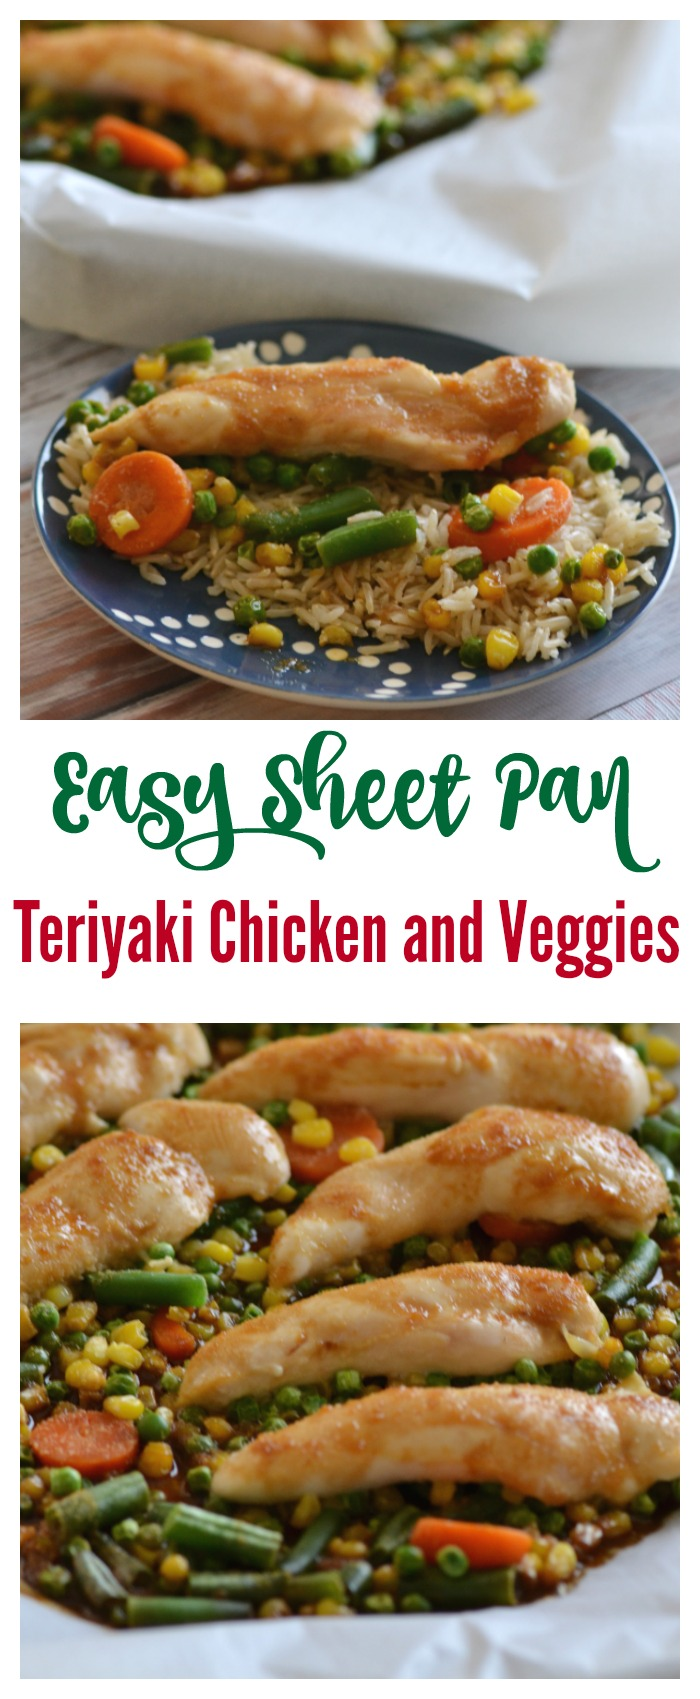 Easy Sheet Pan Teriyaki Chicken and Veggies